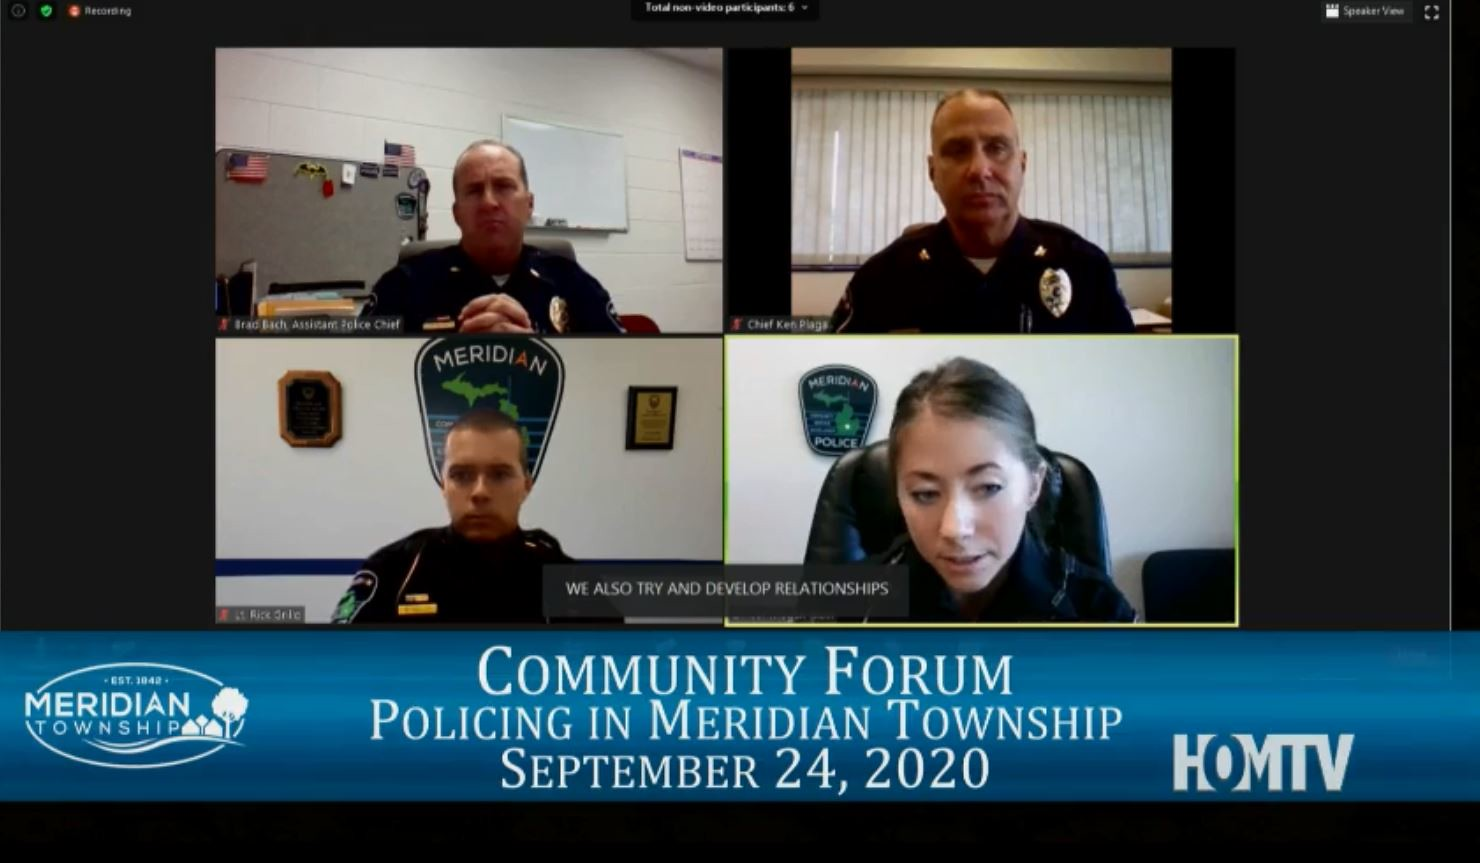 Virtual Community Forum on Policing